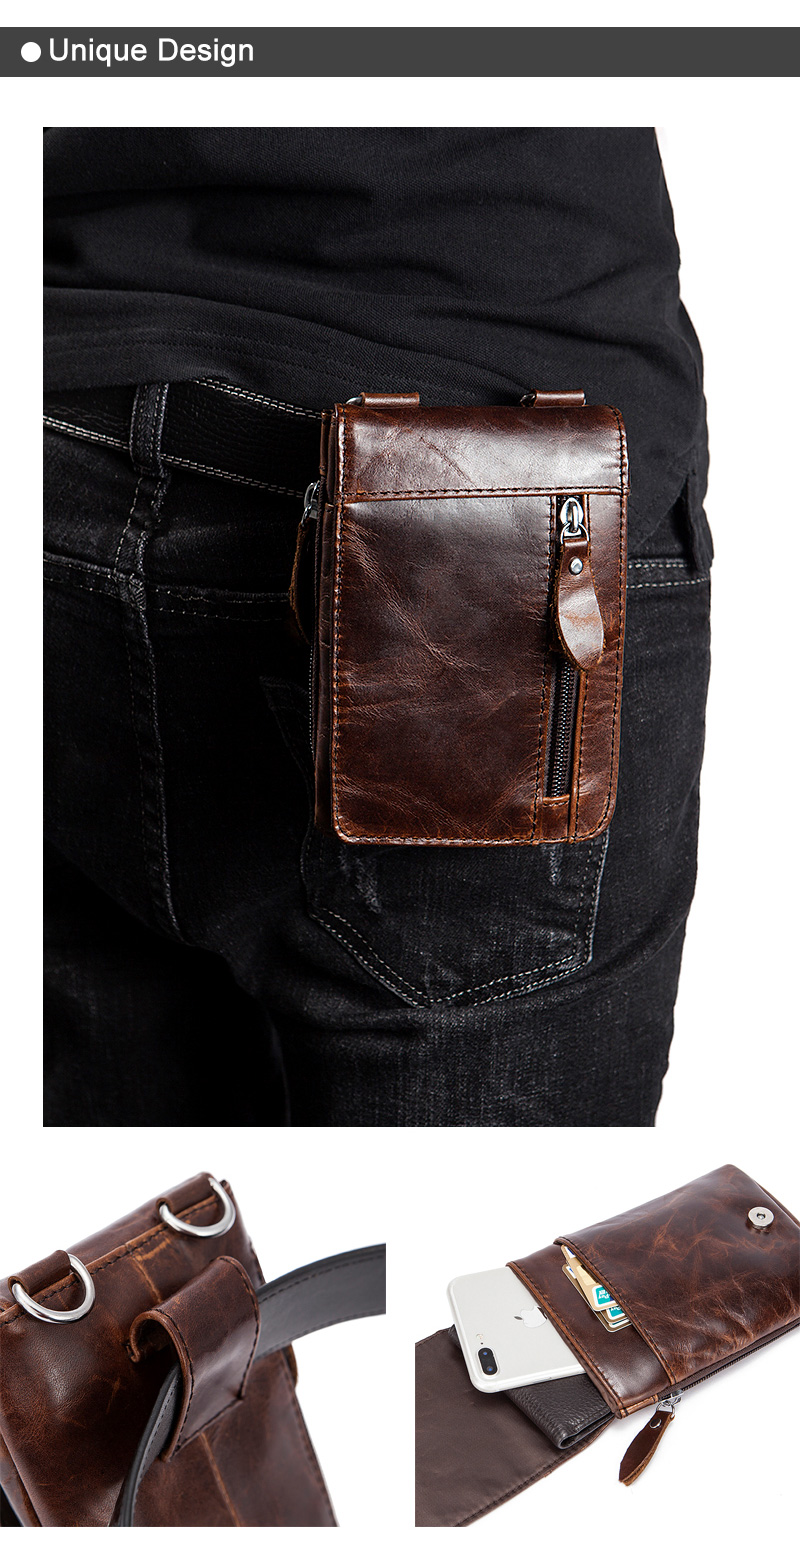 9cf6e6bbd13 MVA Genuine Leather Waist Packs Fanny Pack Belt Bag Phone Pouch Bags Travel  Waist Pack Male Small Bag Leather Pouch 702